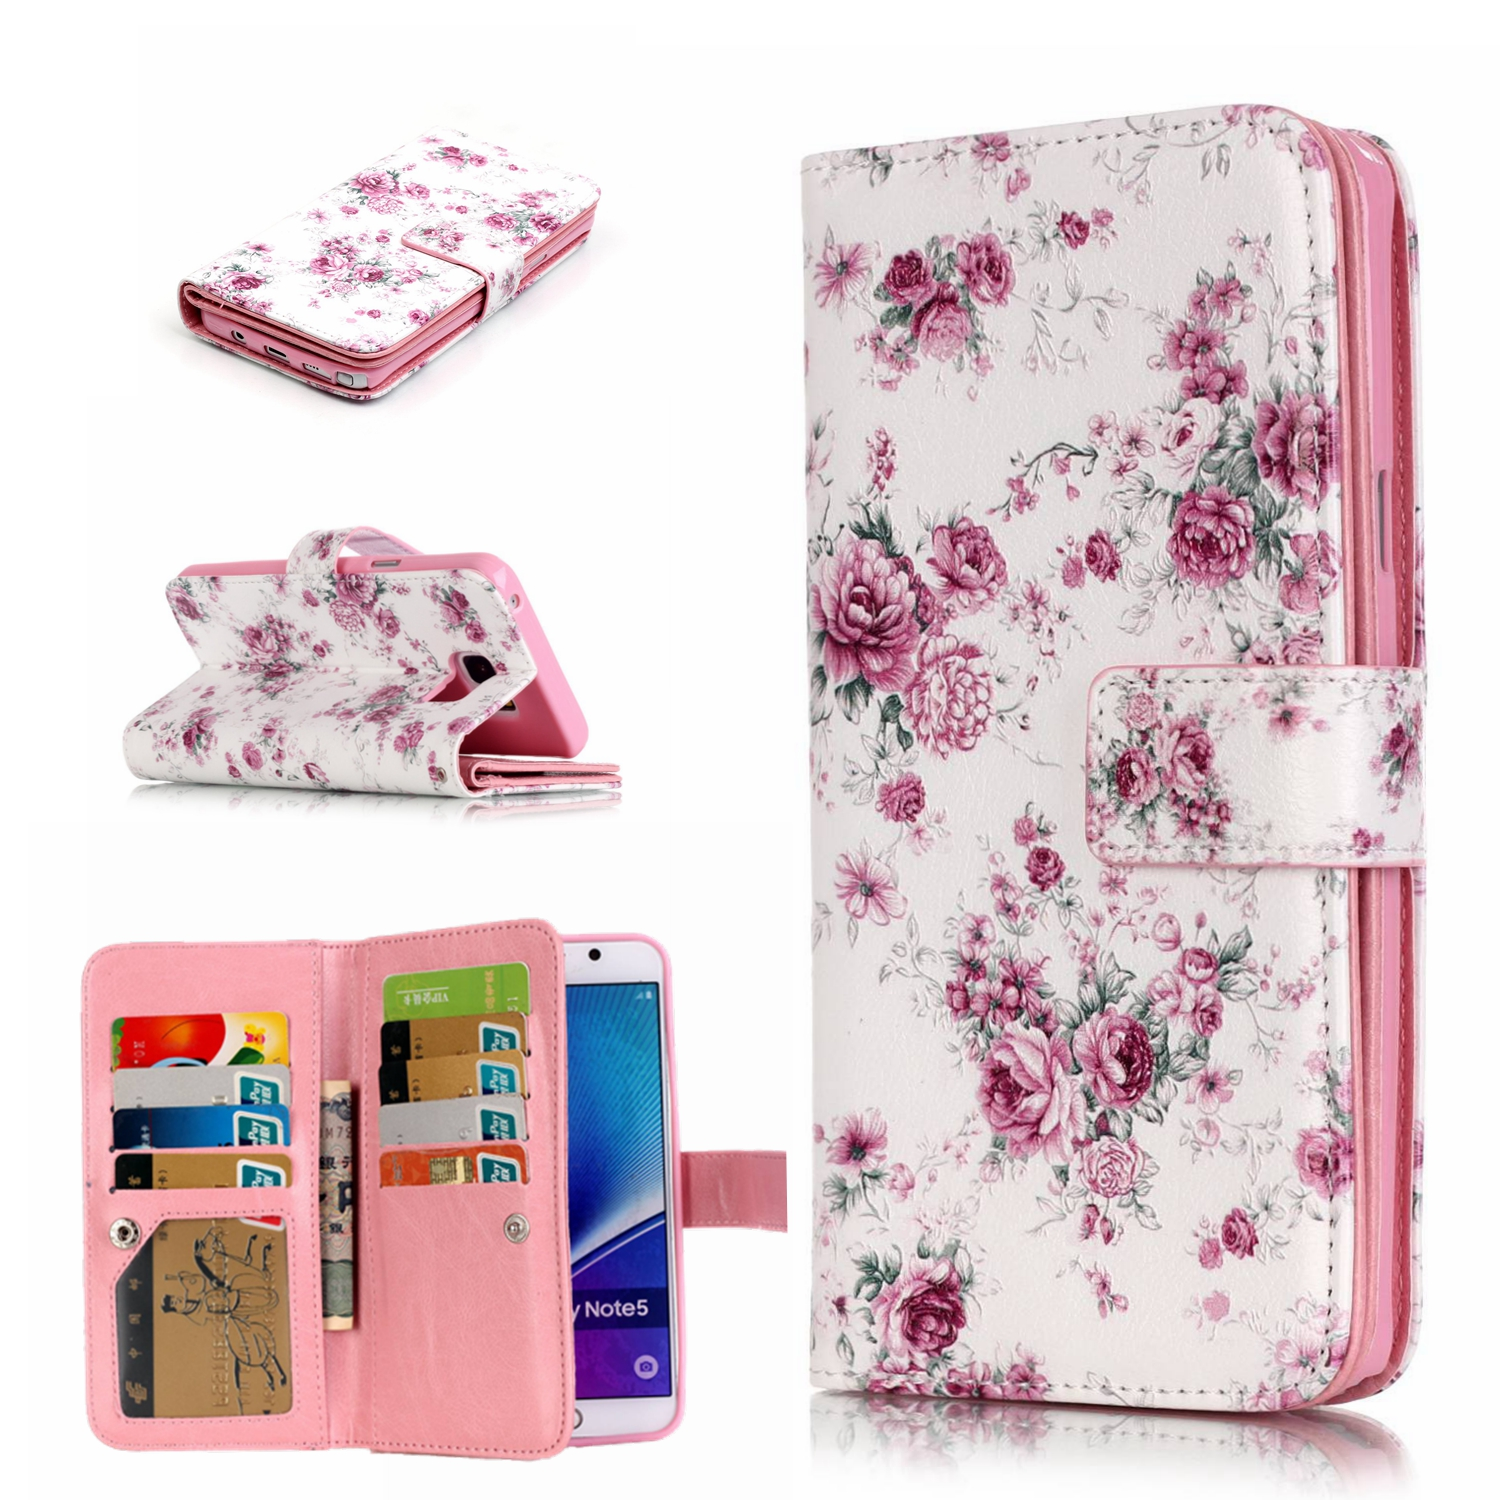 9 Card Holder Wallet Case For Samsung Galaxy S3 I9300 Luxury PU Leather Flip Phone Cases